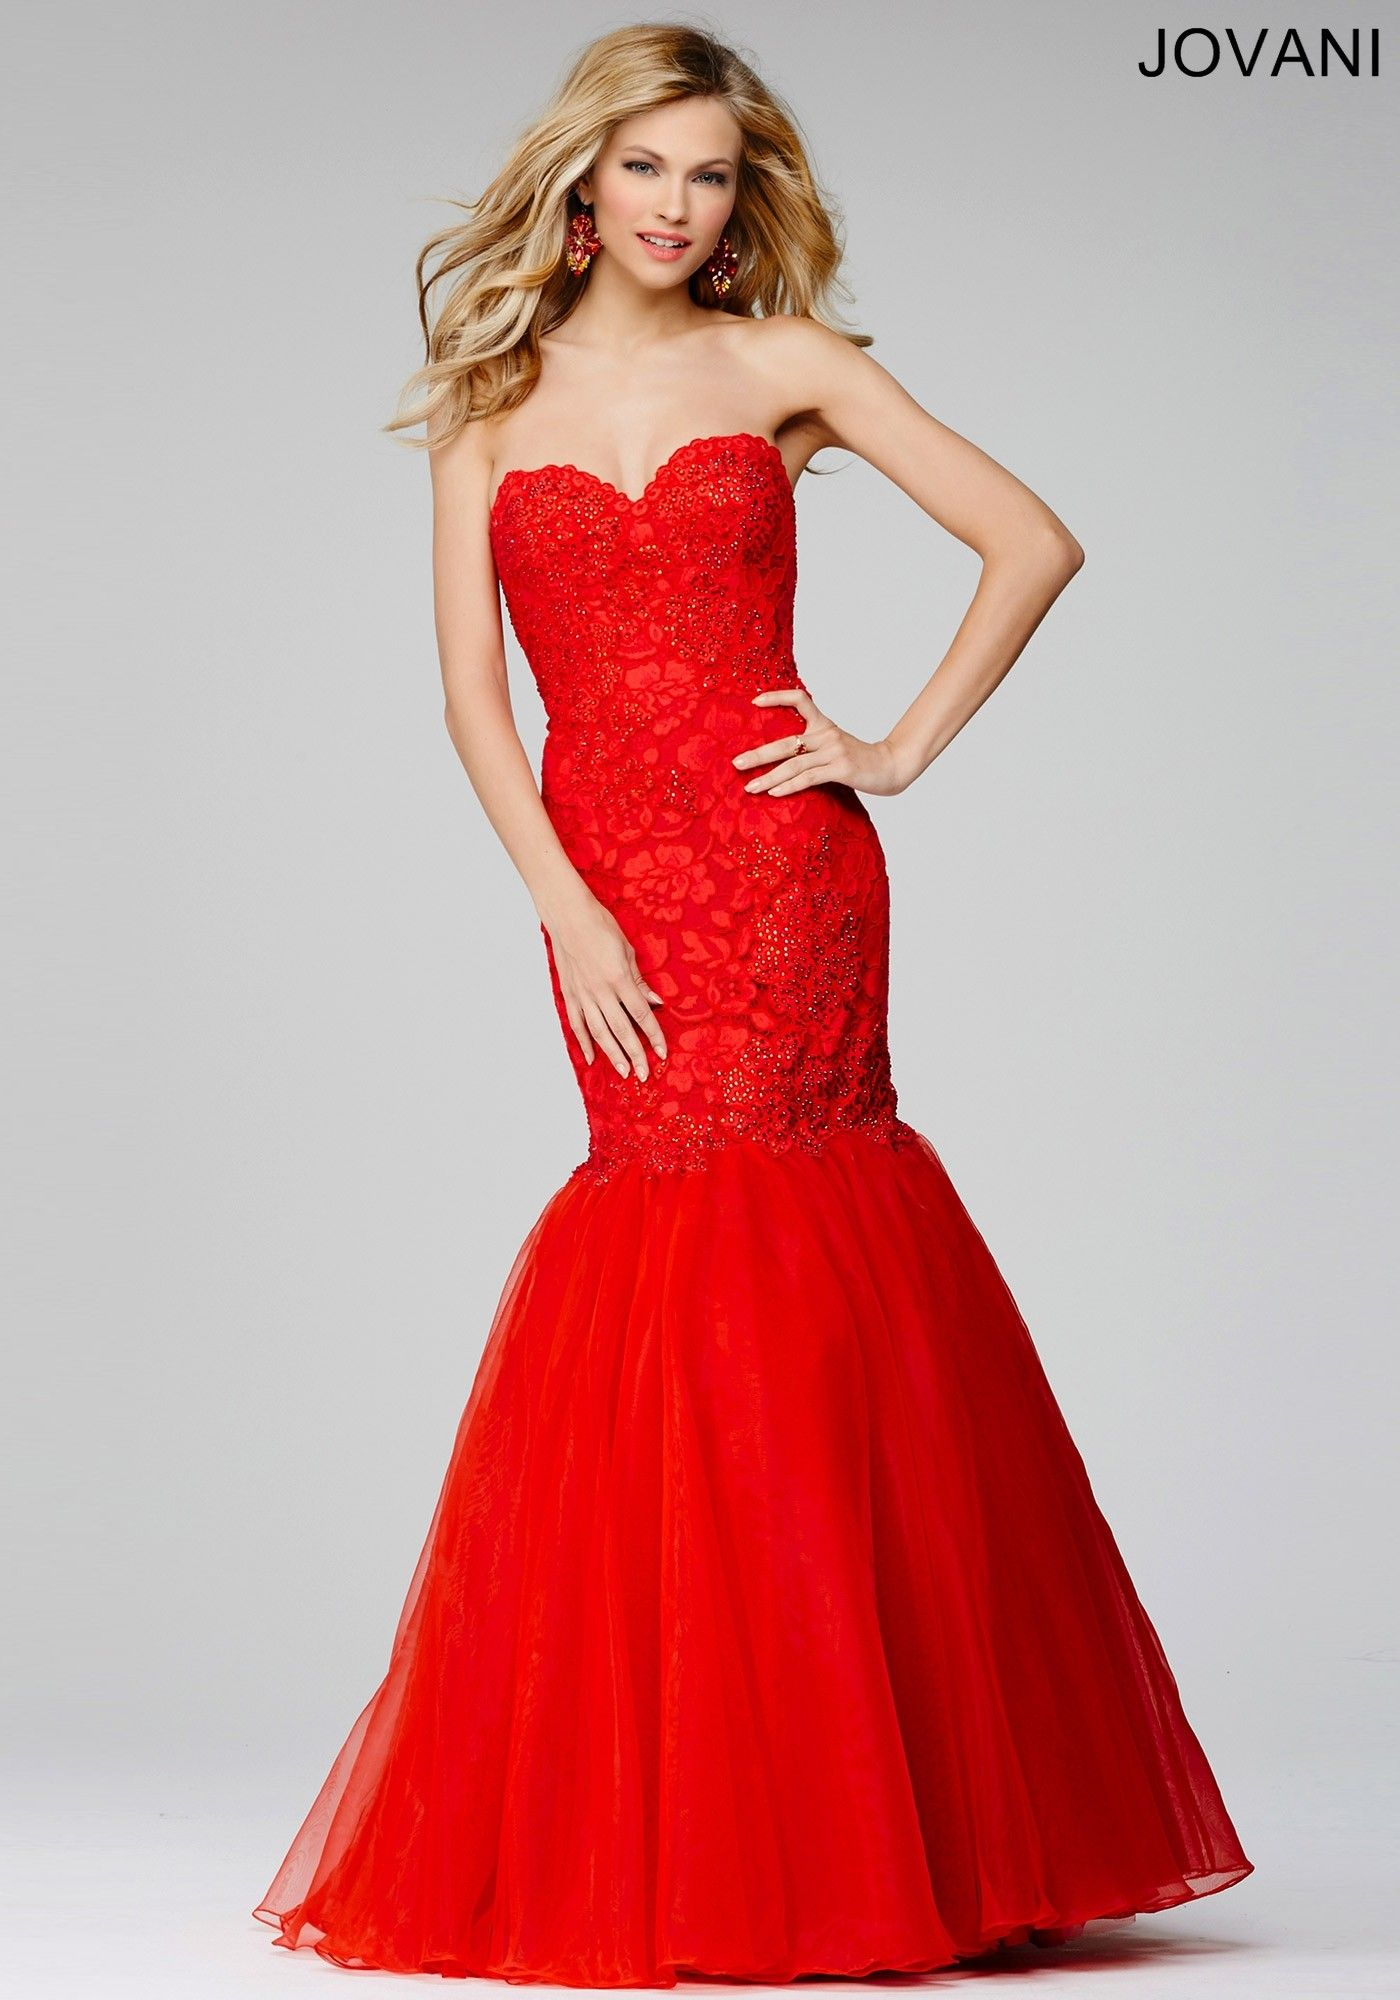 58eff6afd3e Red Lace Prom Dress Jovani - Gomes Weine AG